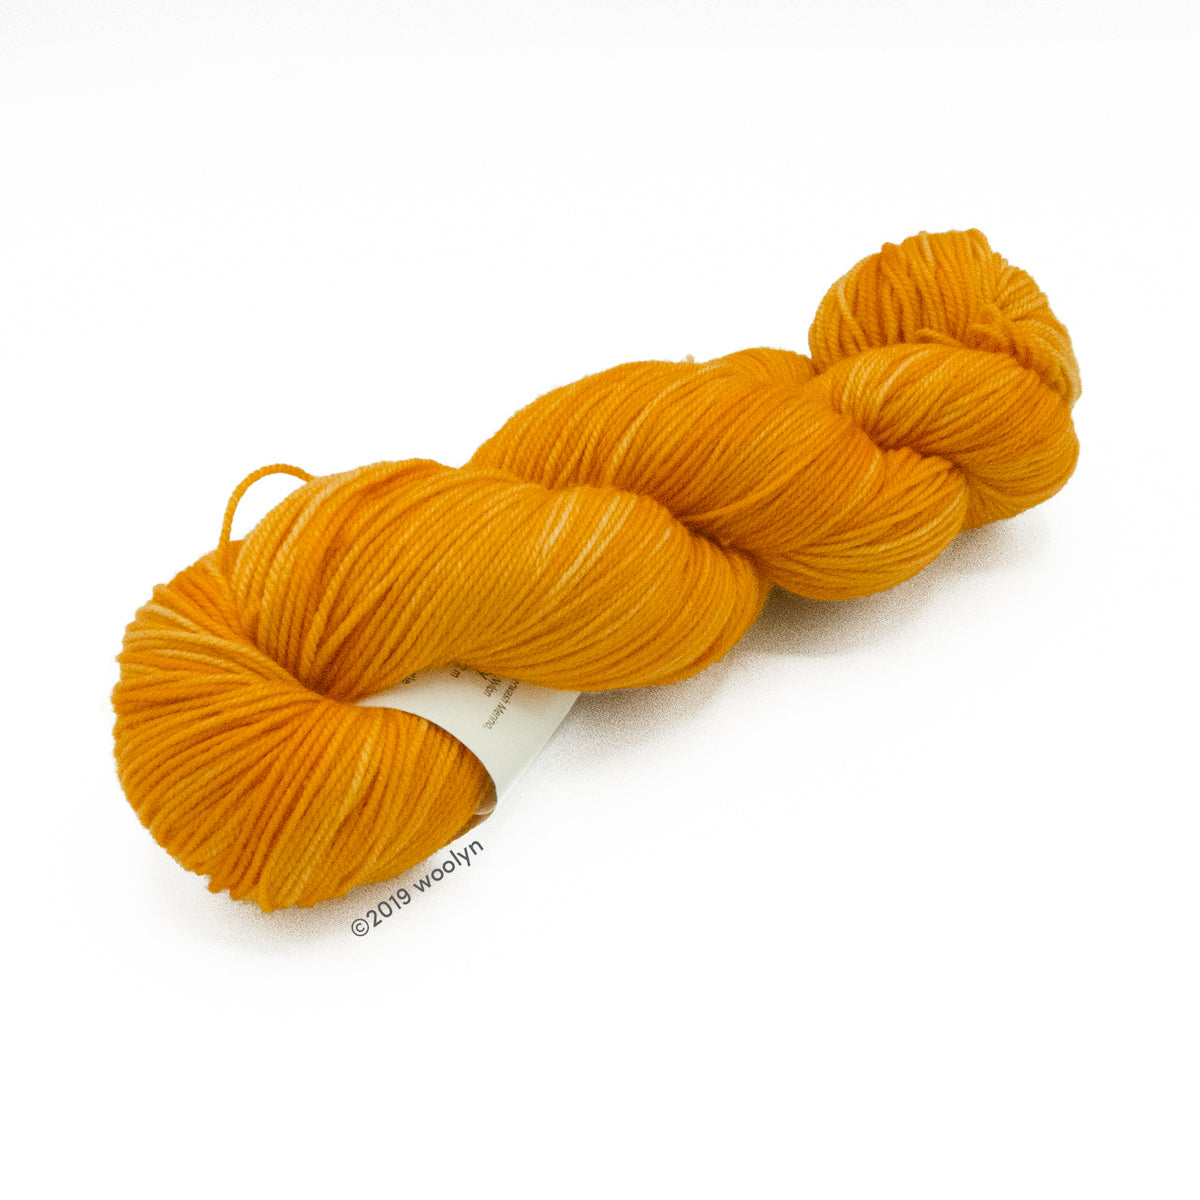 Hand dyed  fingering weight yarn in bright blue pumpkin orange shades twisted into a skein.